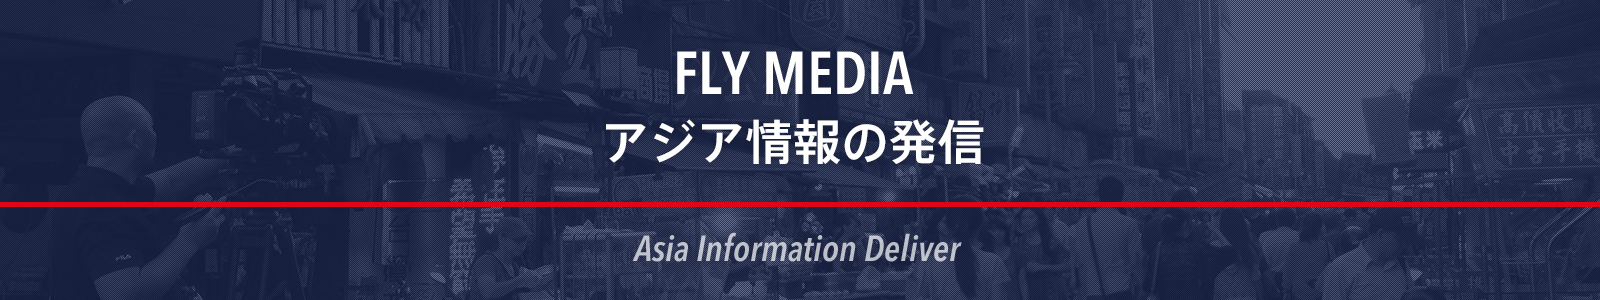 FLY MEDIA アジア情報の発信